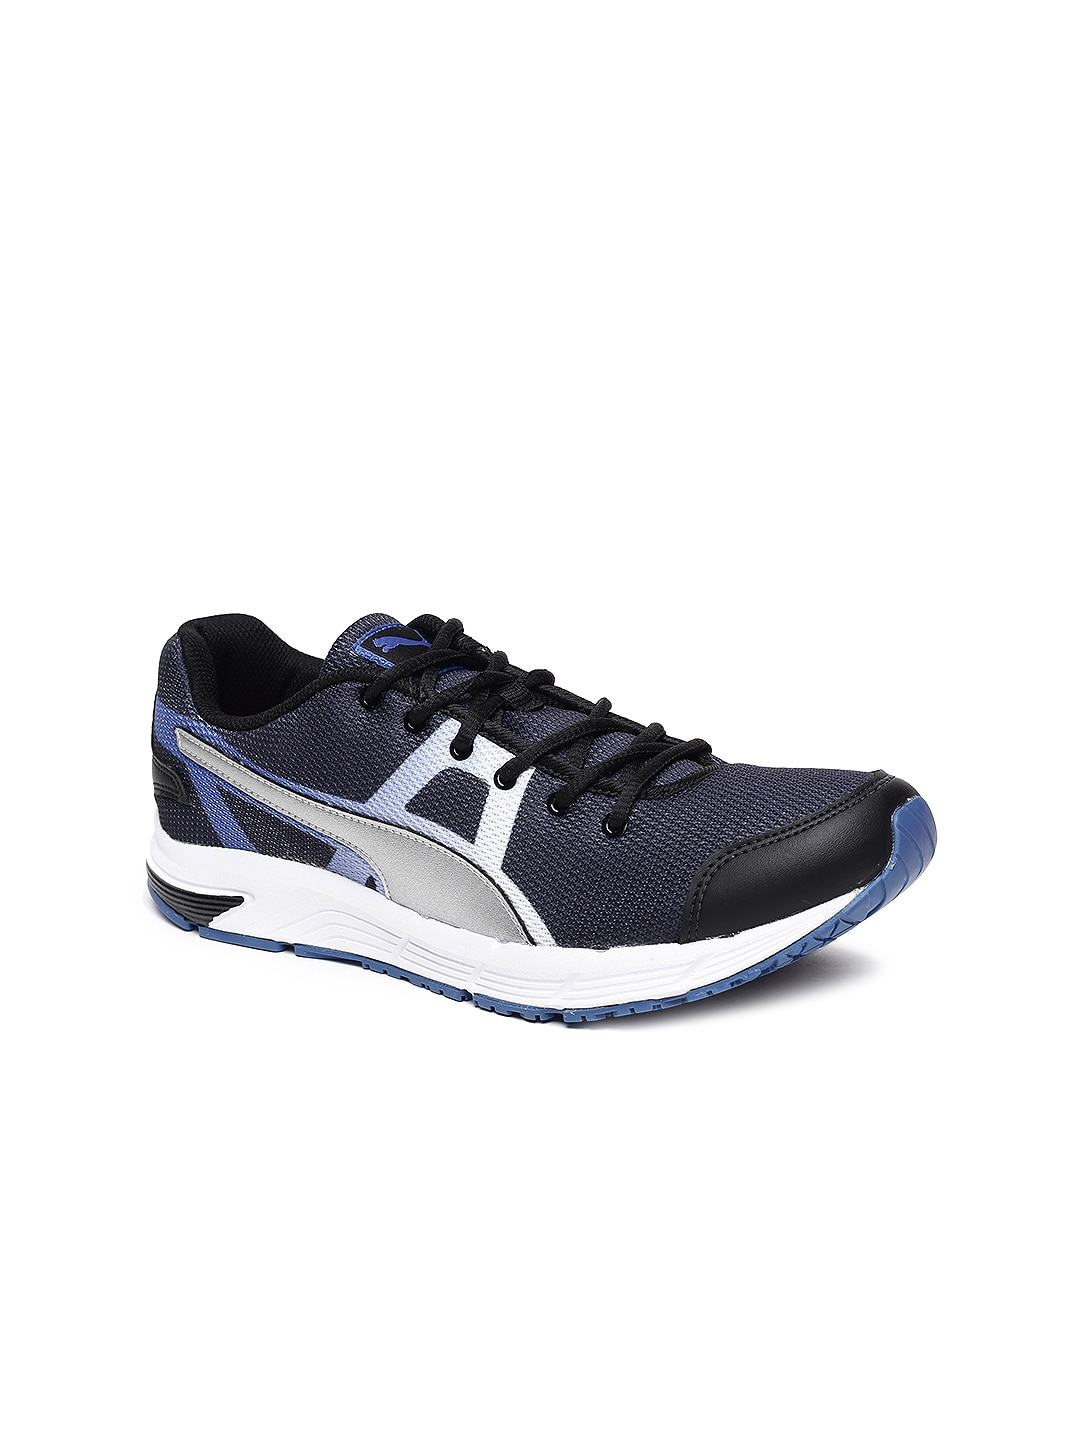 best sneakers 570fd abb1f Puma Running Shoes   Buy Puma Running Shoes Online in India at Best Price